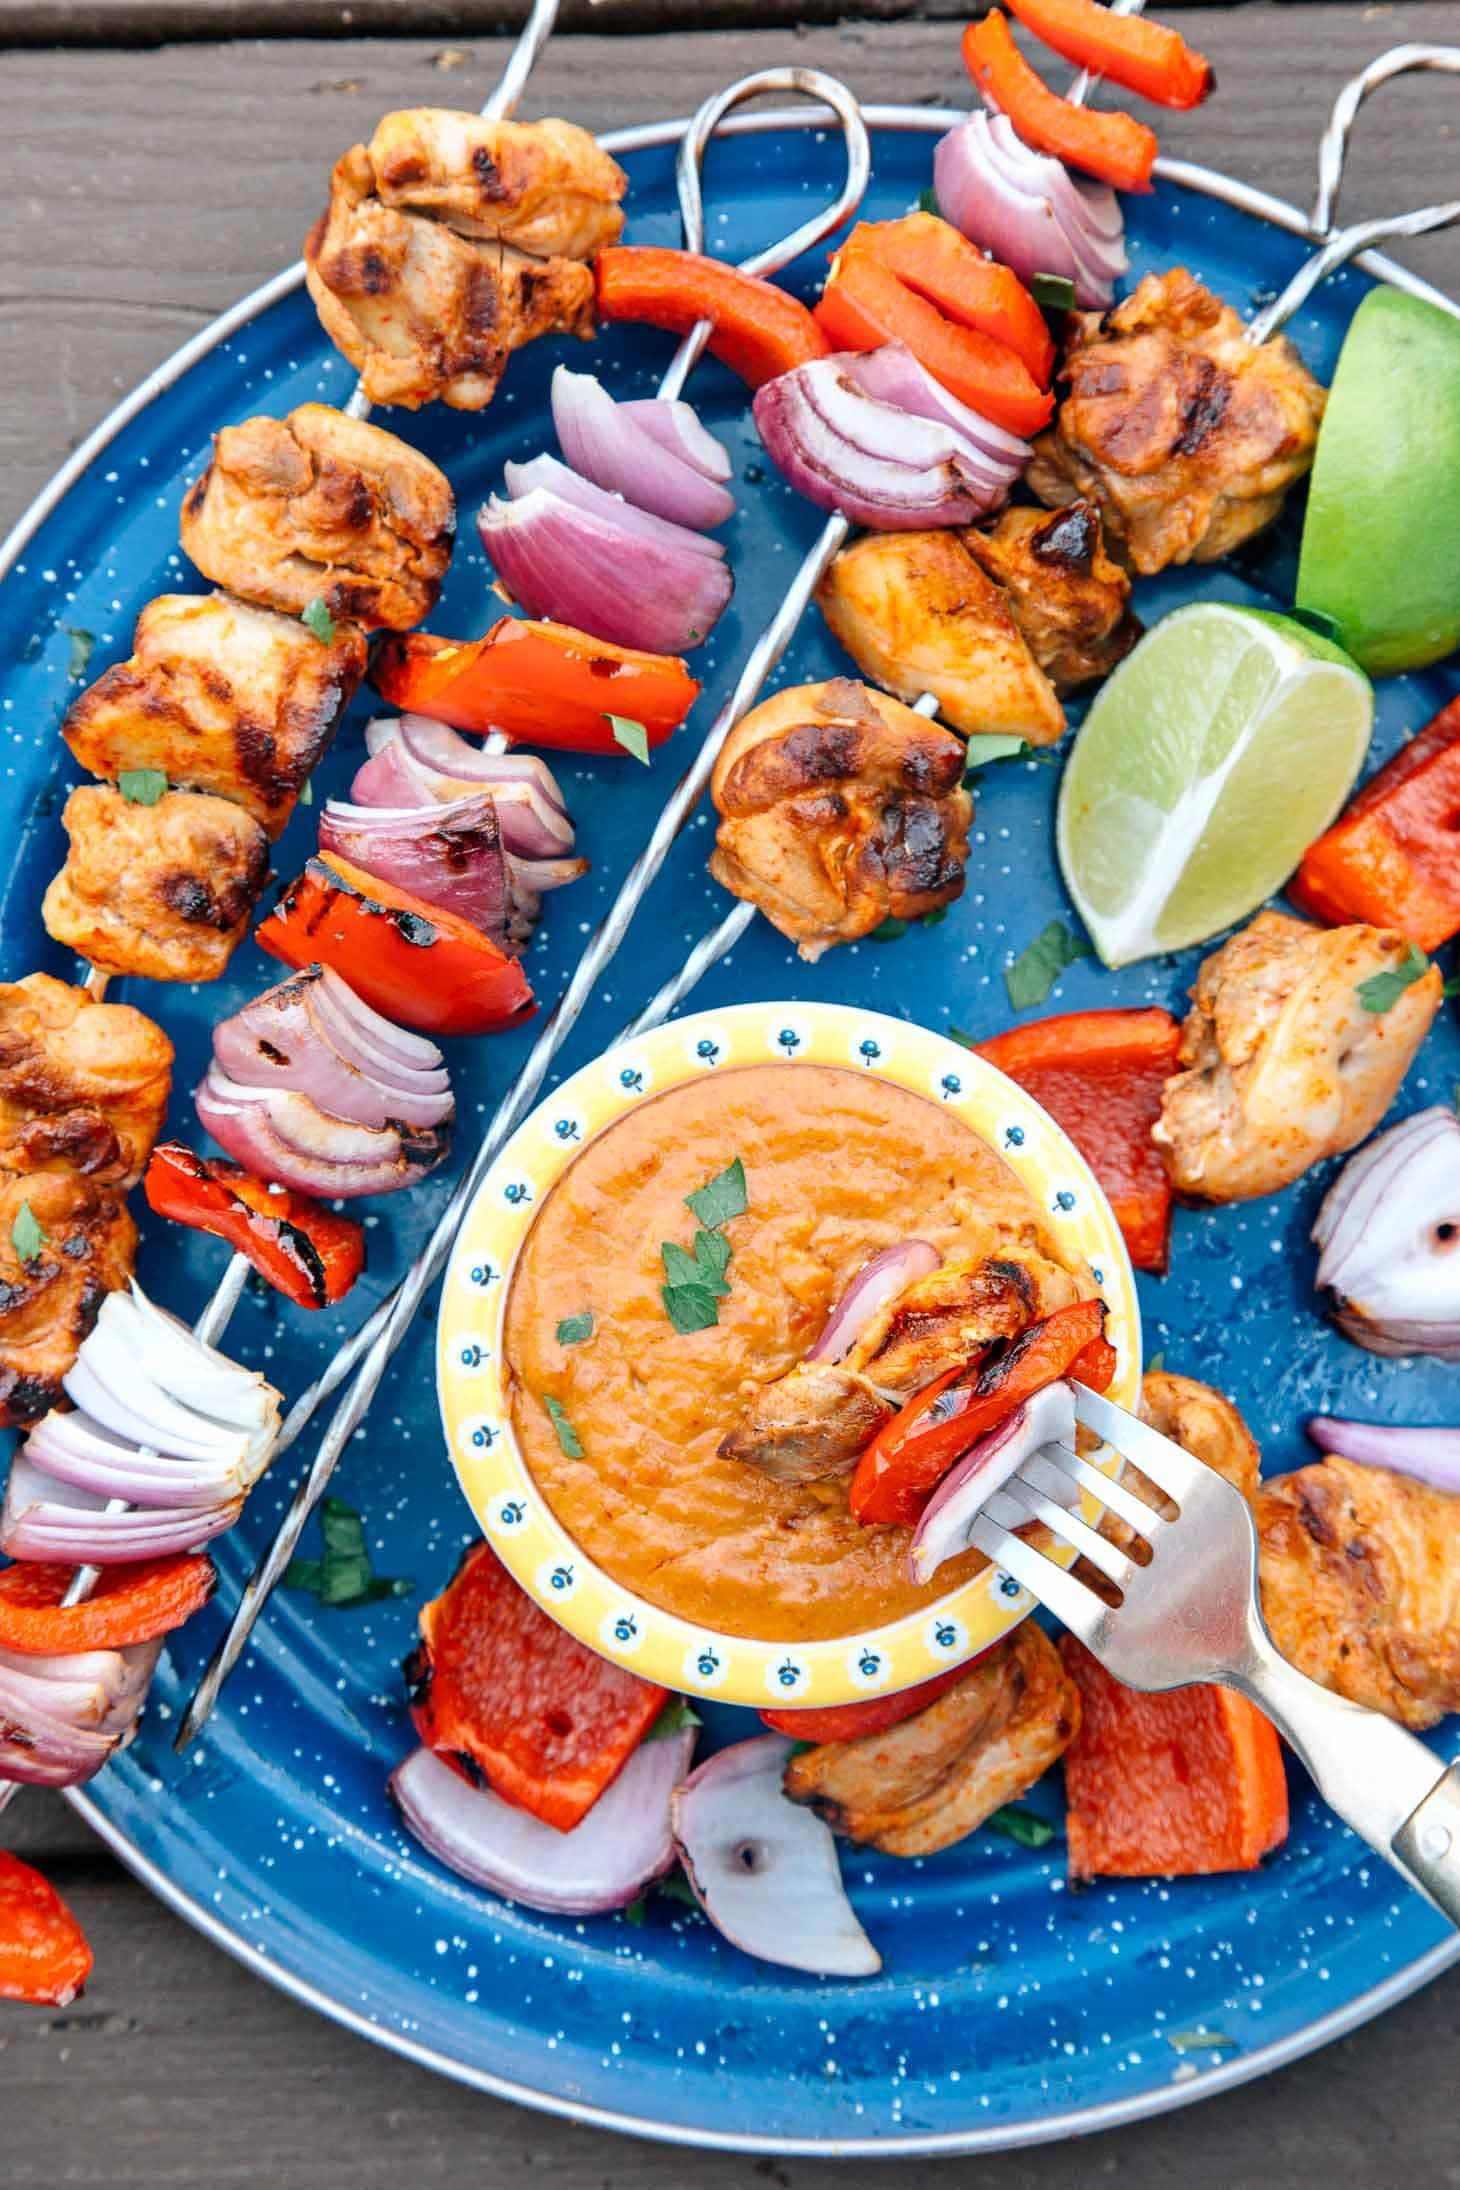 15 Grilled Kabob Recipes To Make Over Your Campfire Easy Camping